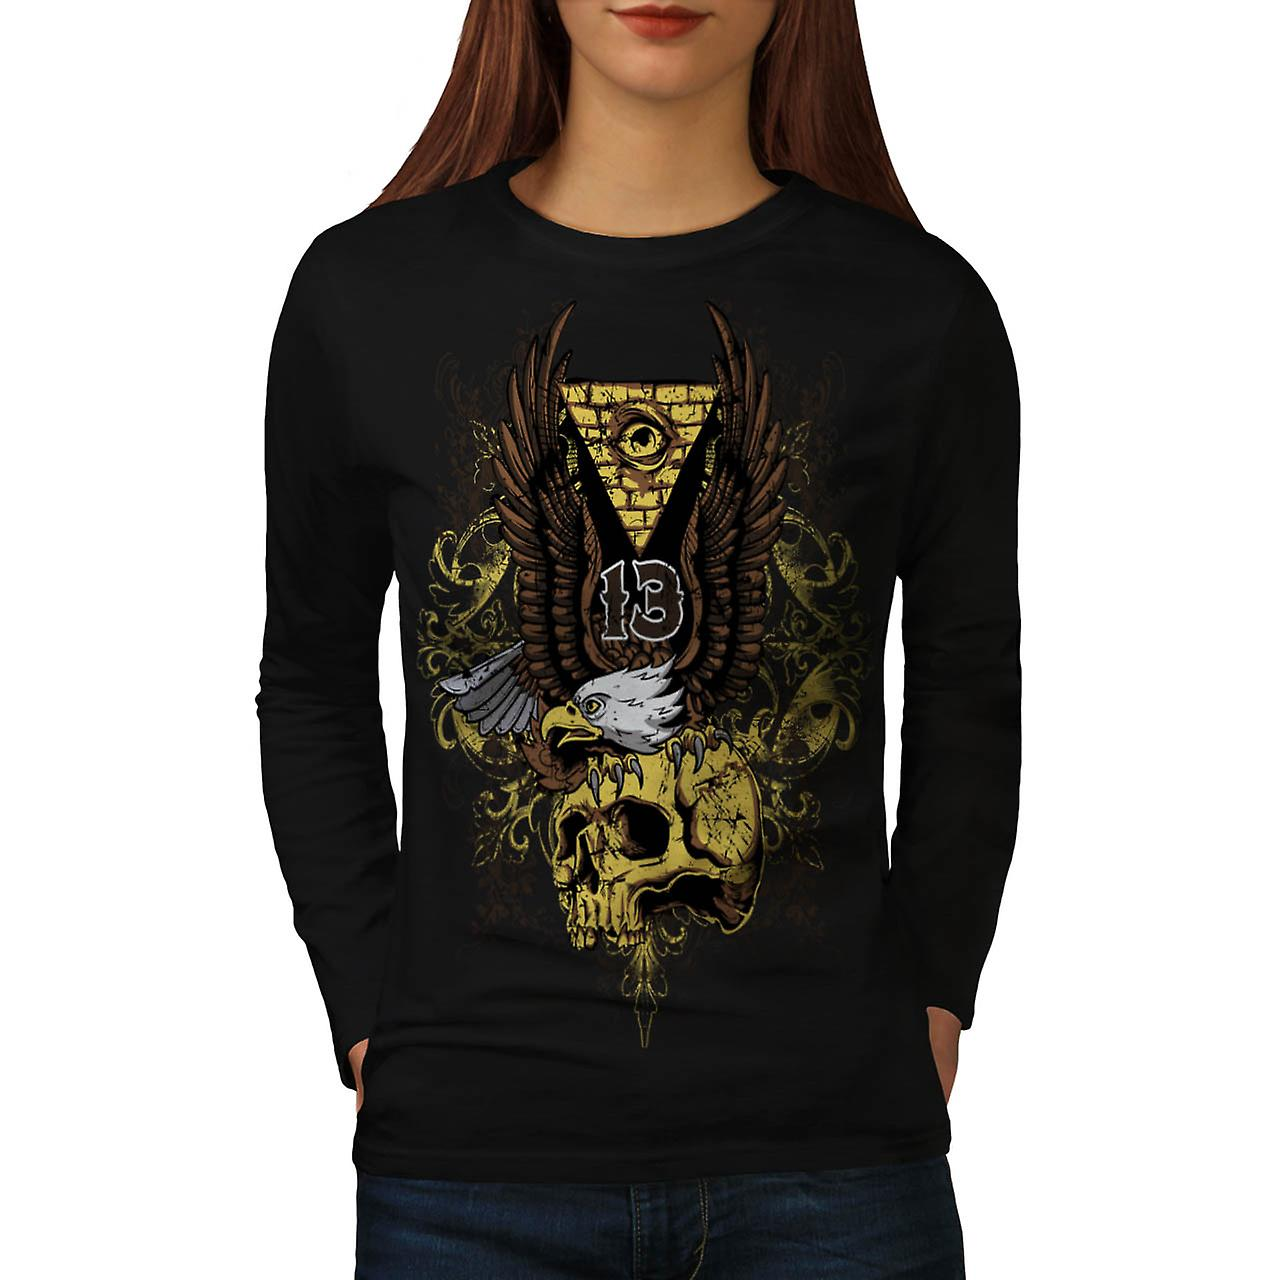 Male Aquila uccello teschio occhio mortale donna Black t-shirt manica lunga | Wellcoda